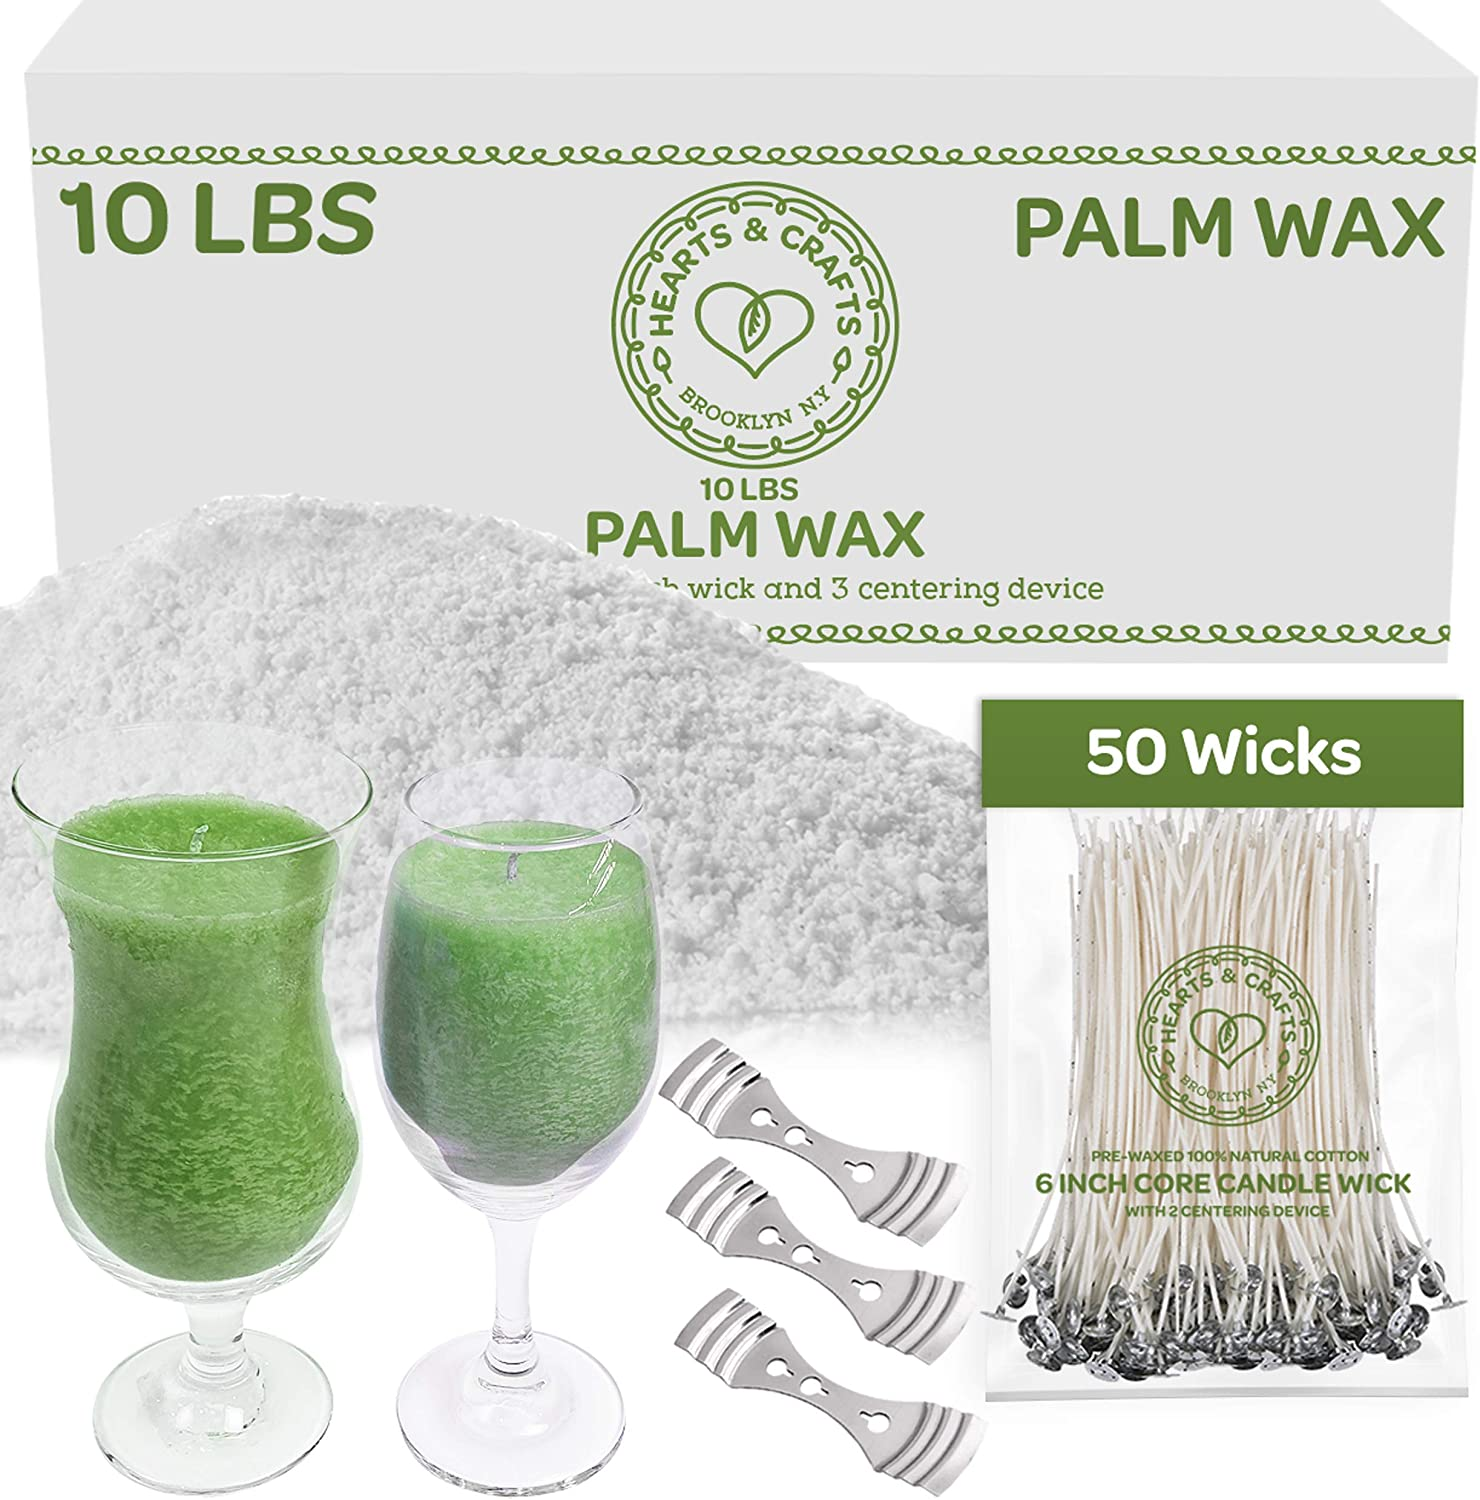 "Hearts and Crafts Feathering Palm Candle Wax and Wicks for DIY Candle Making, All-Natural & RSPO Certified - 10lb Bag with 50ct 6"" Pre-Waxed Candle Wicks, 3 Centering Device"